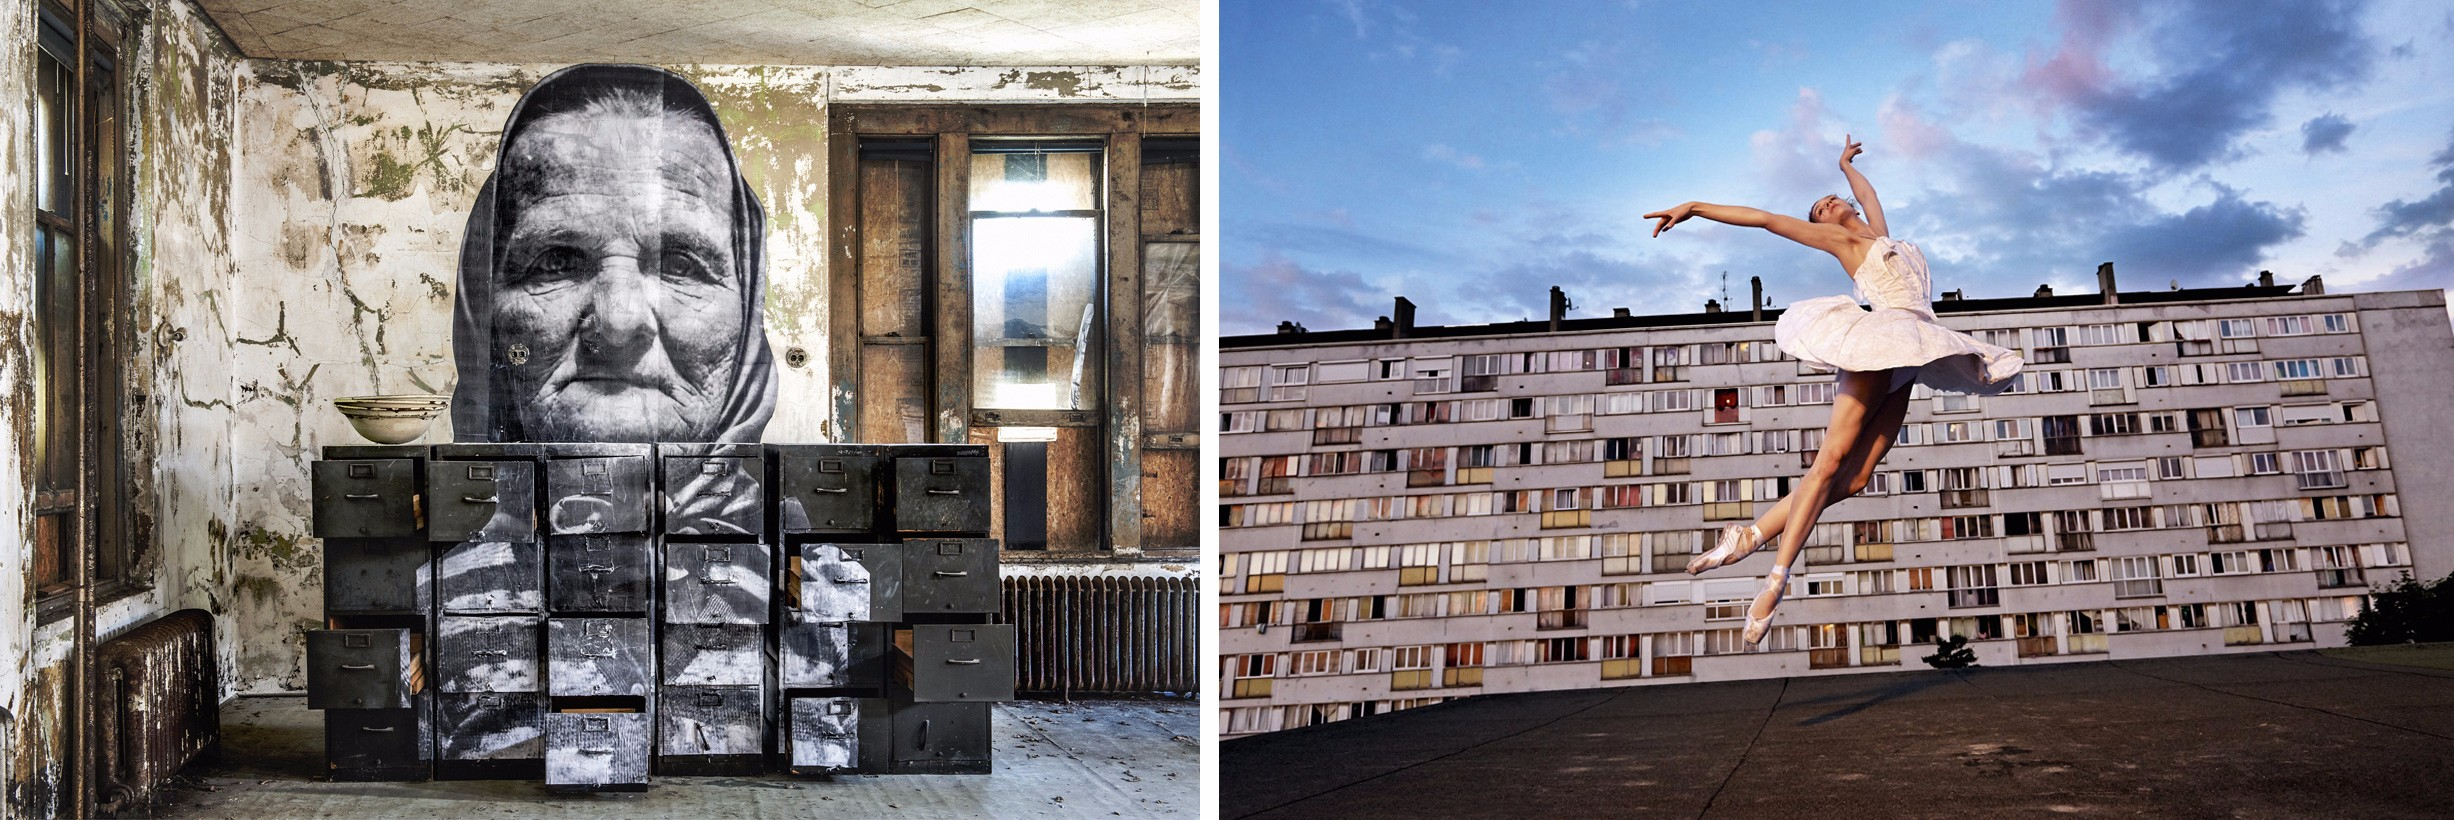 A photo from The Unframed Ellis Island Project (left) and the Les Bosquets series by JR.